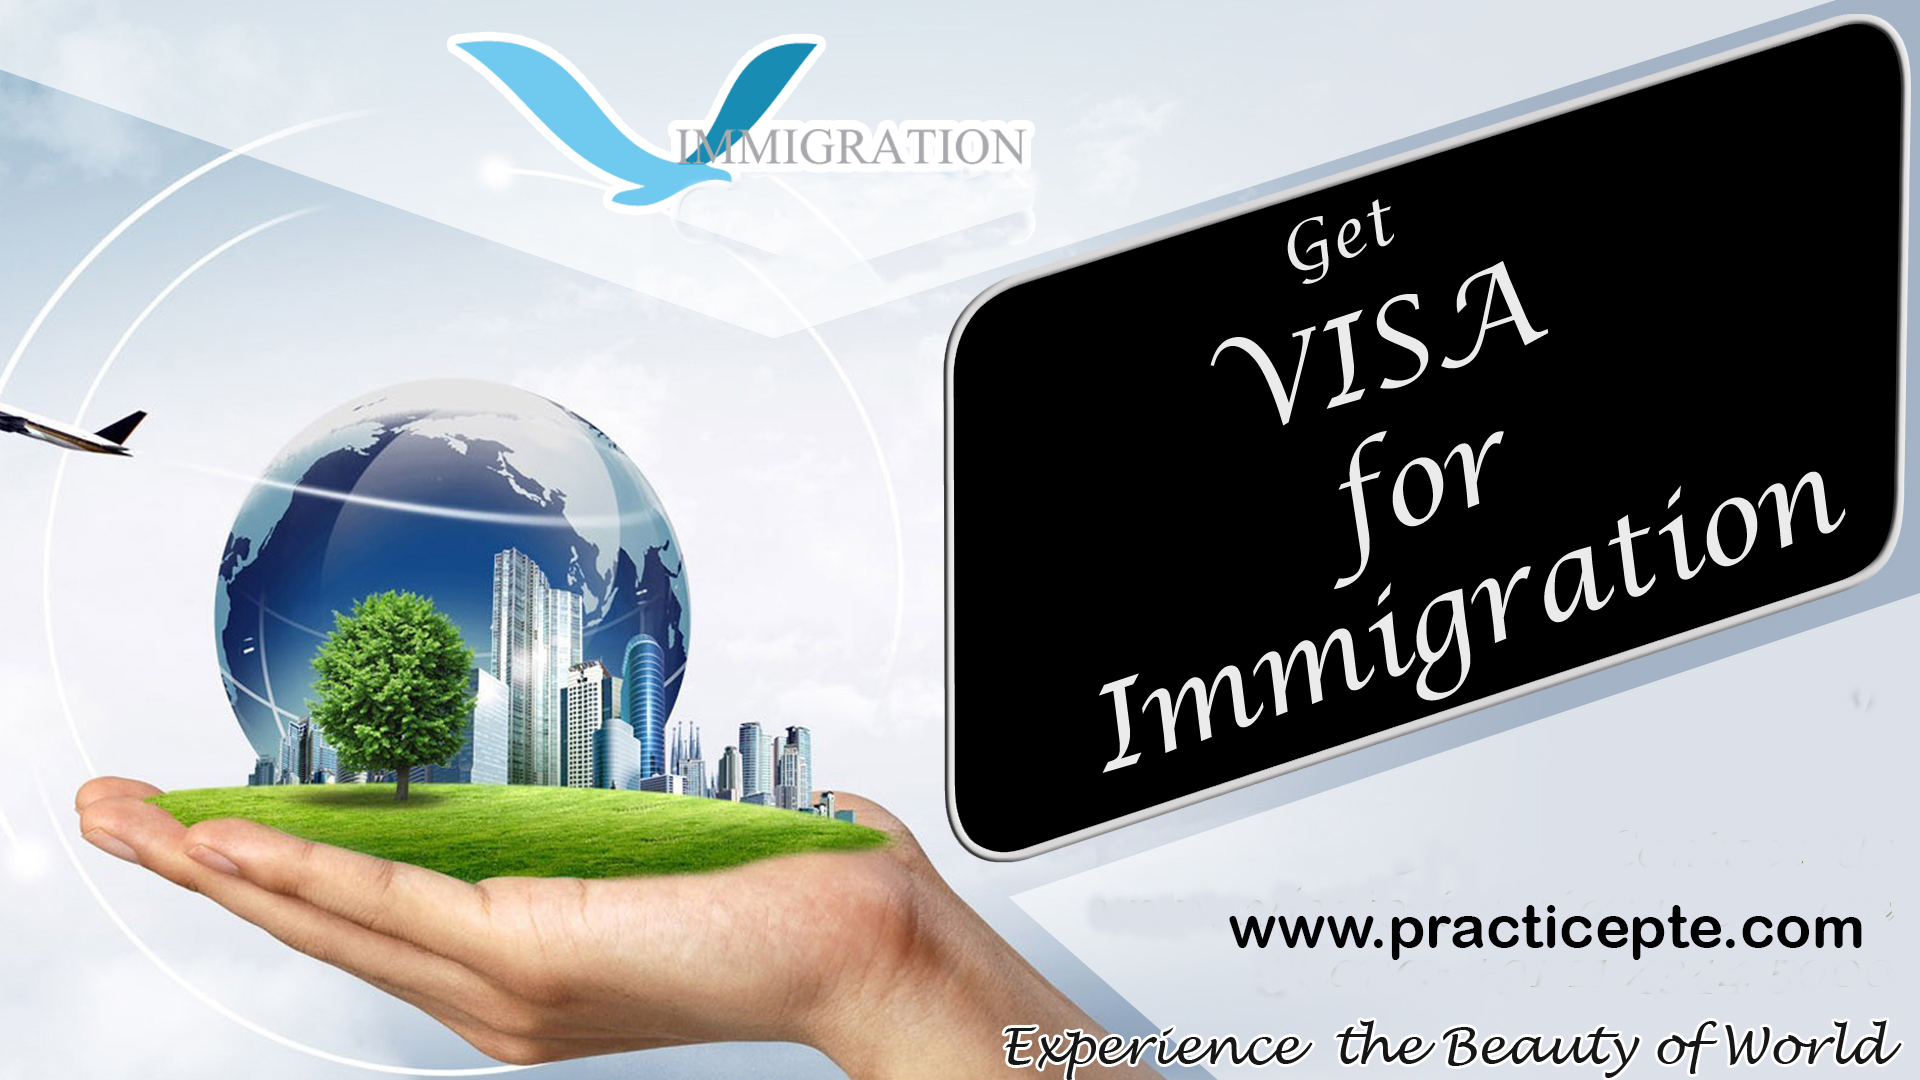 New zealnad Immigration, Practice, Pte, free assistment